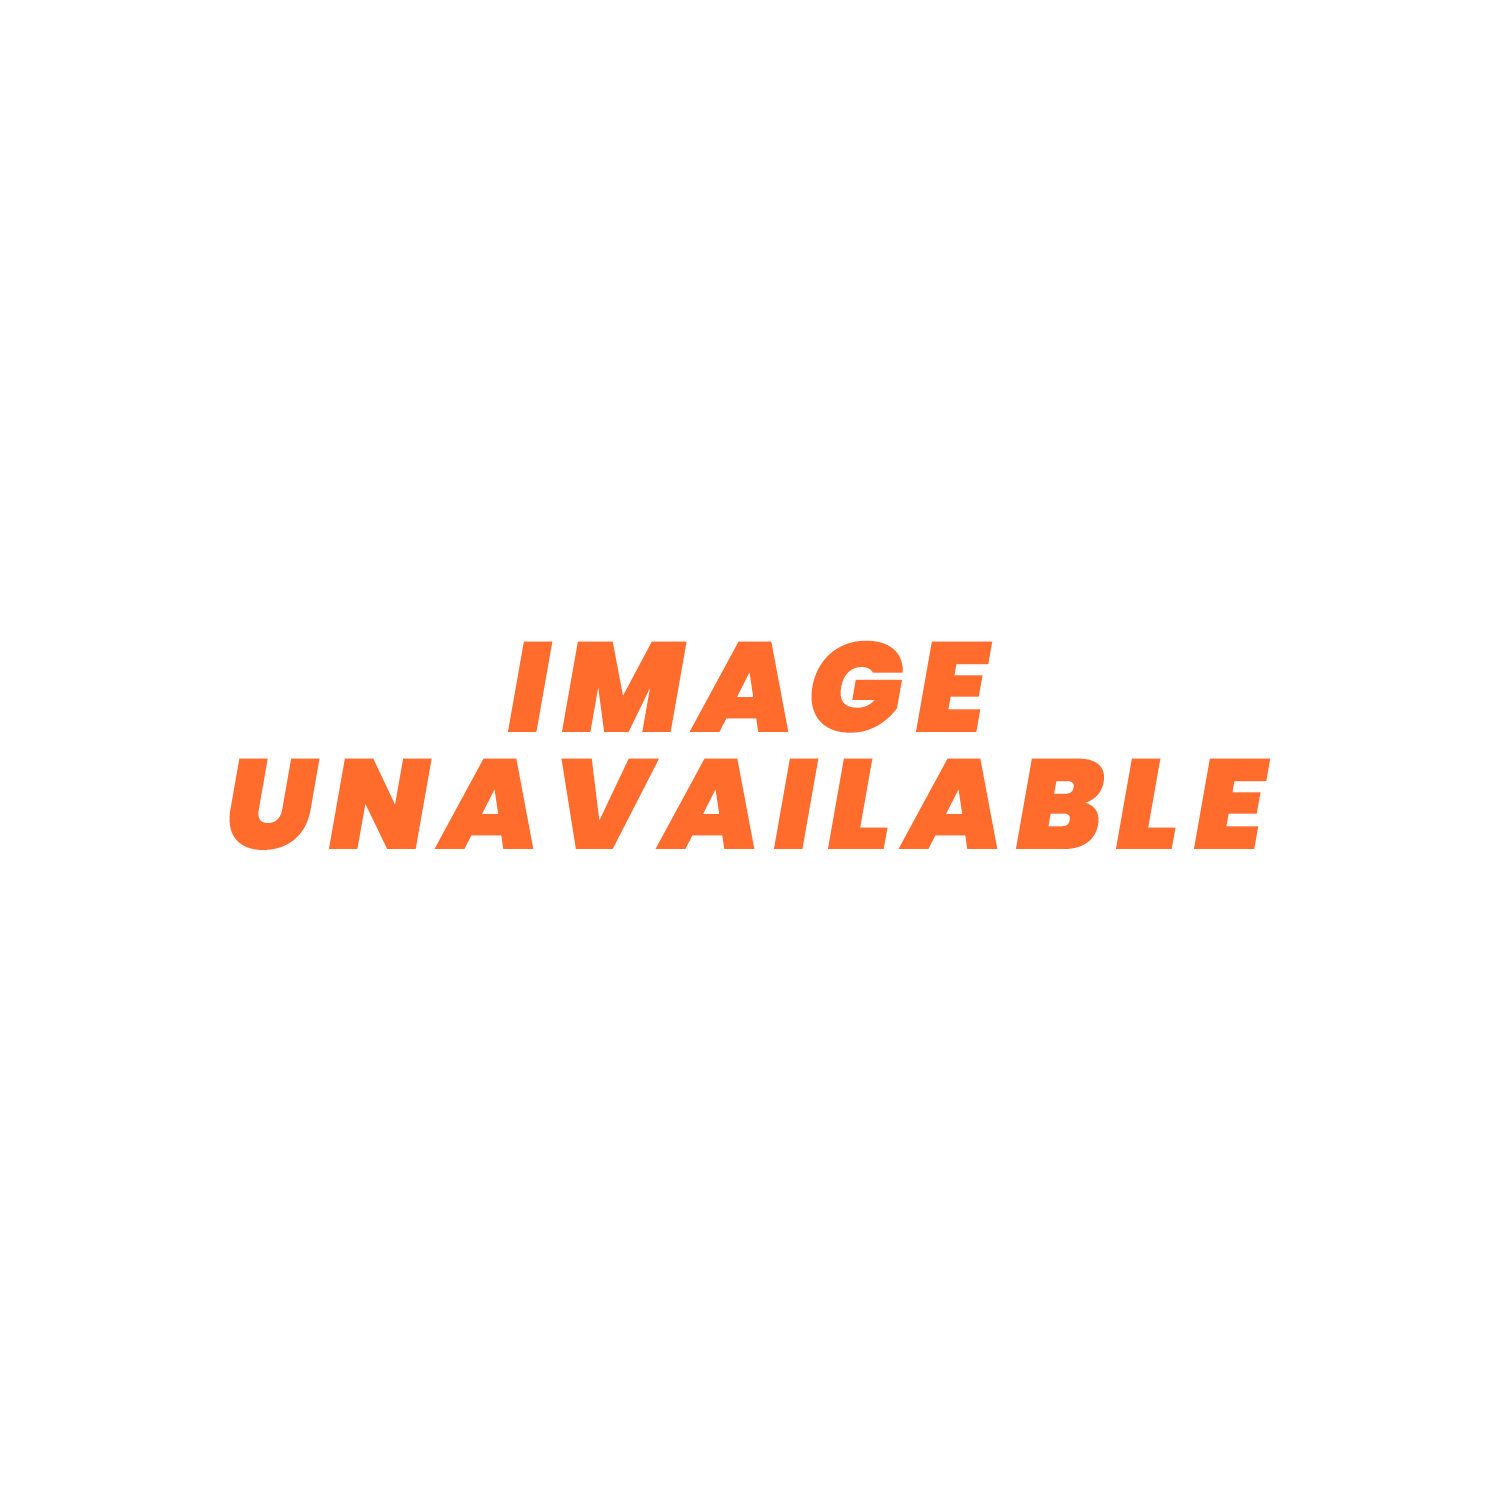 "SPAL Radiator Fan - 7.5"" (190mm) Push VA14-AP7/C-34S 348cfm"